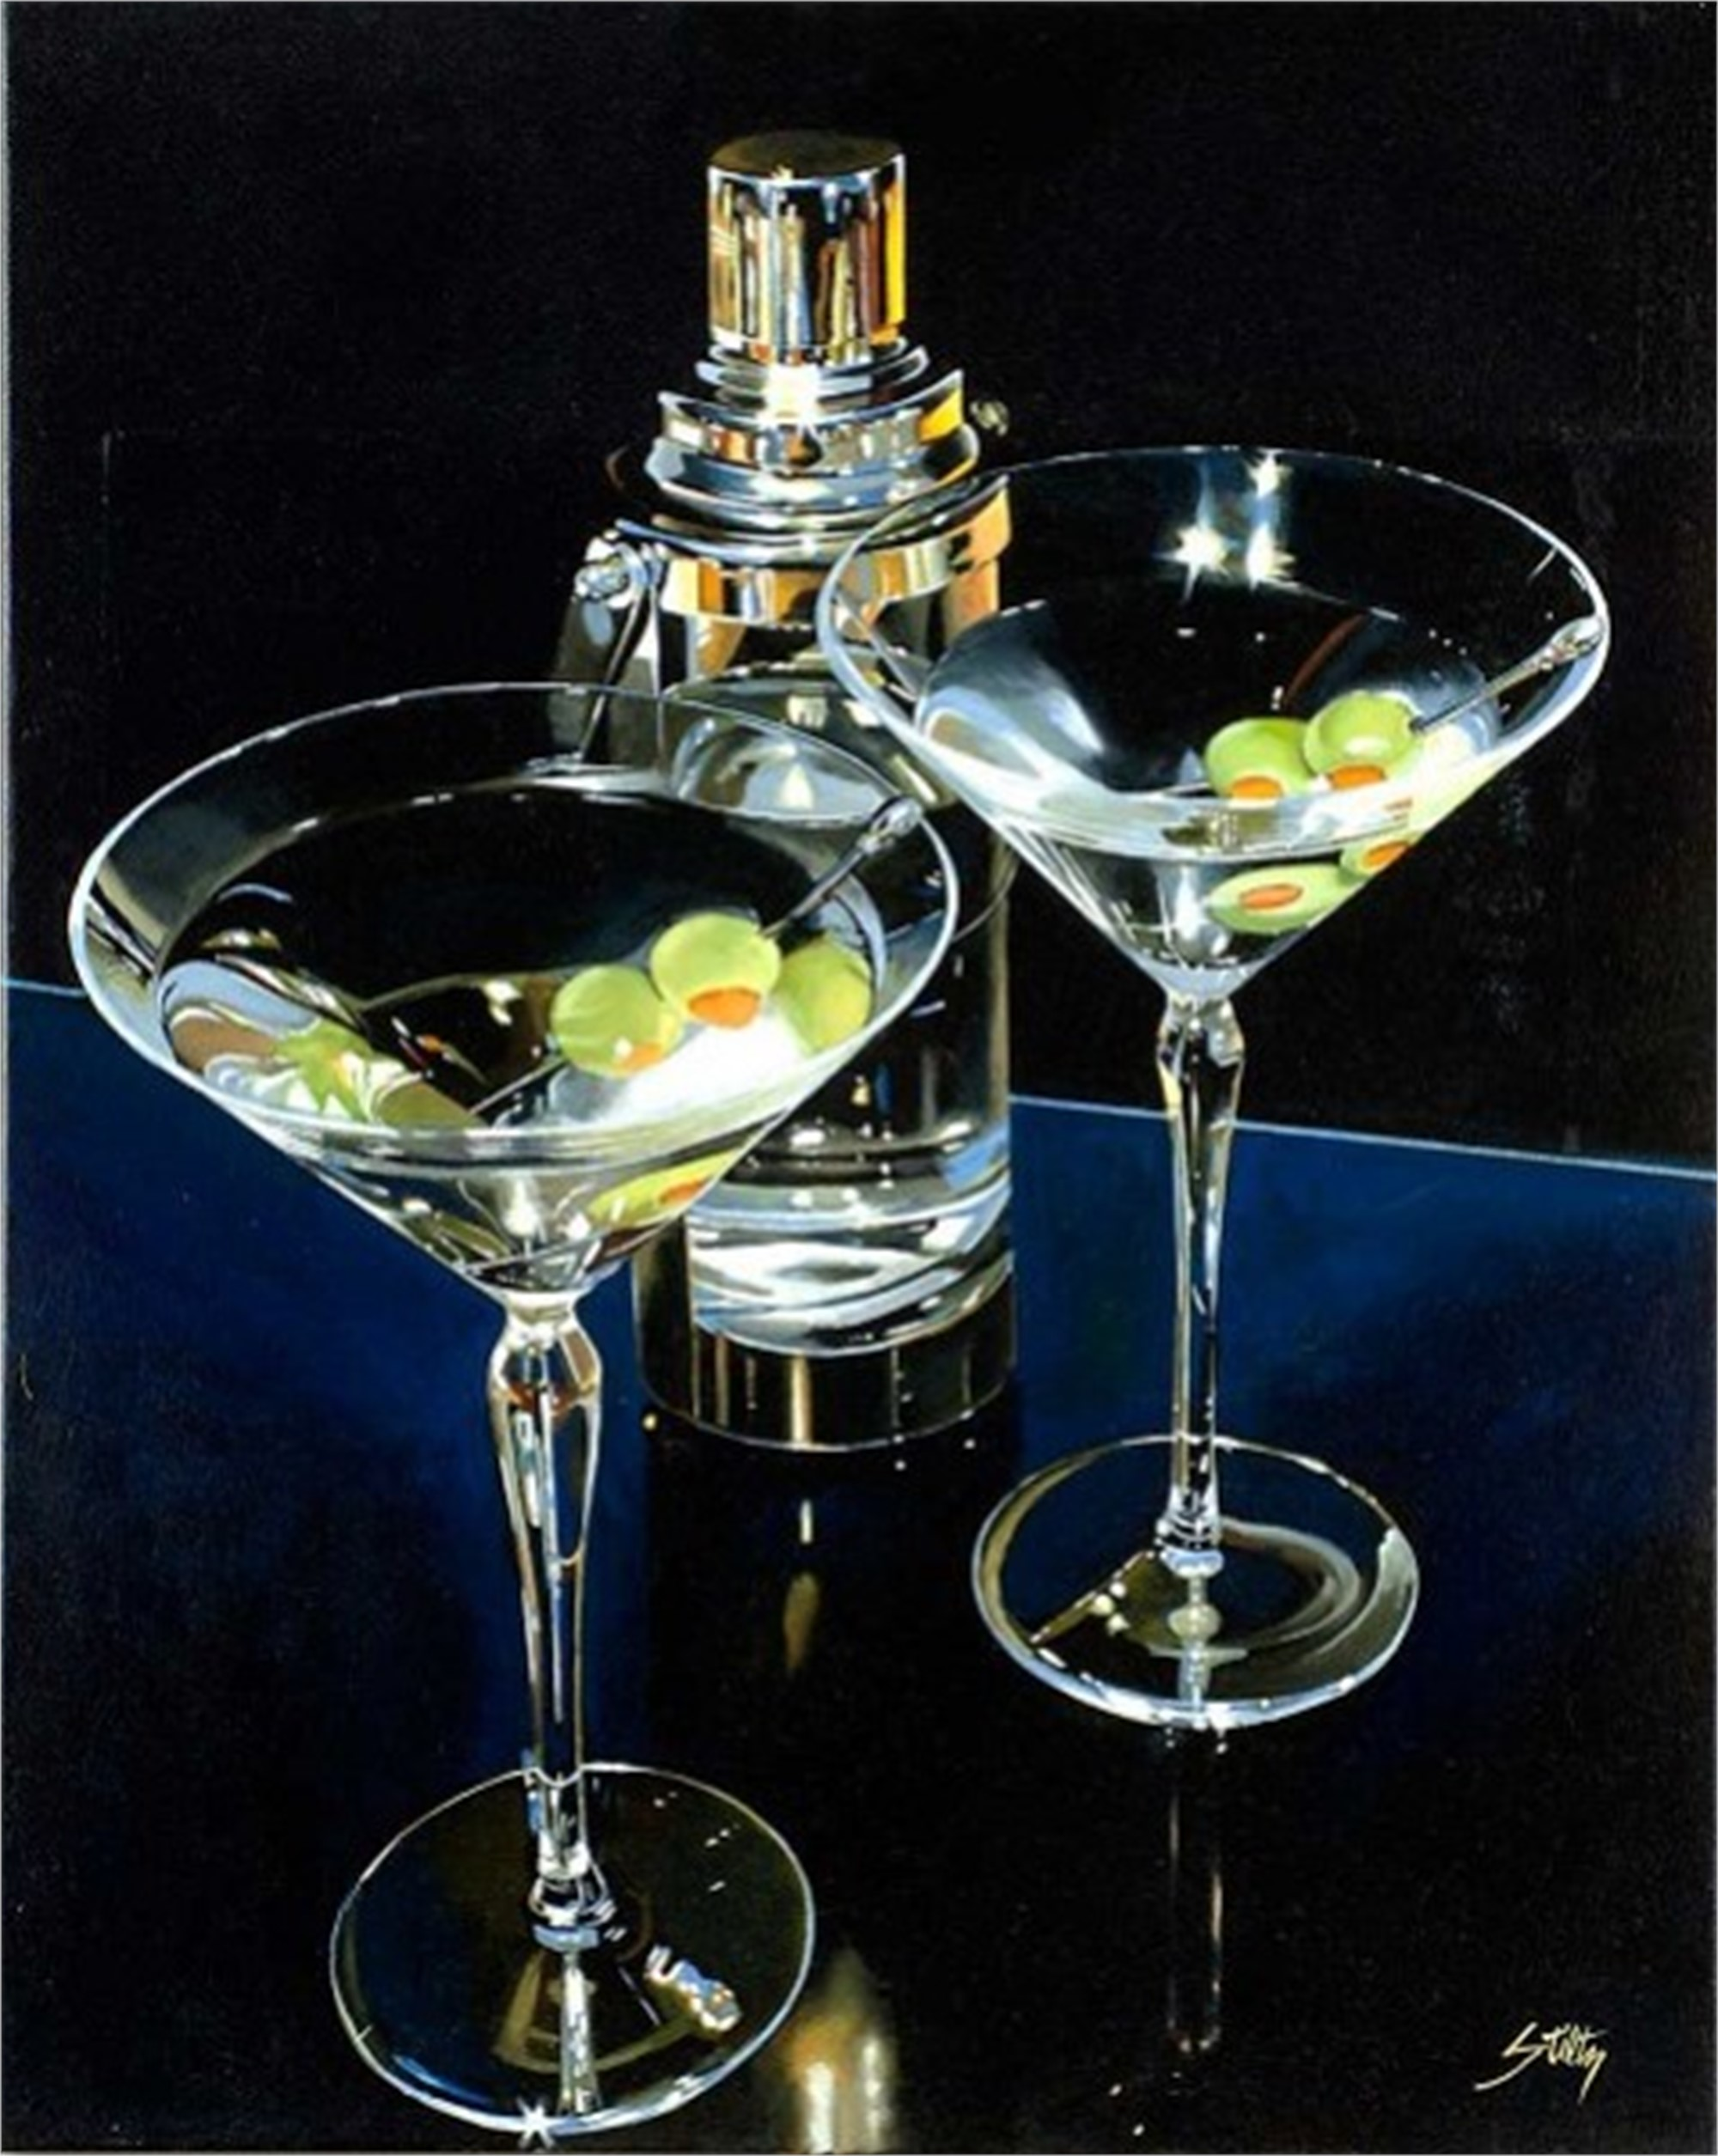 Martini Night (Martinis for Two), 2014 by Tom Stiltz